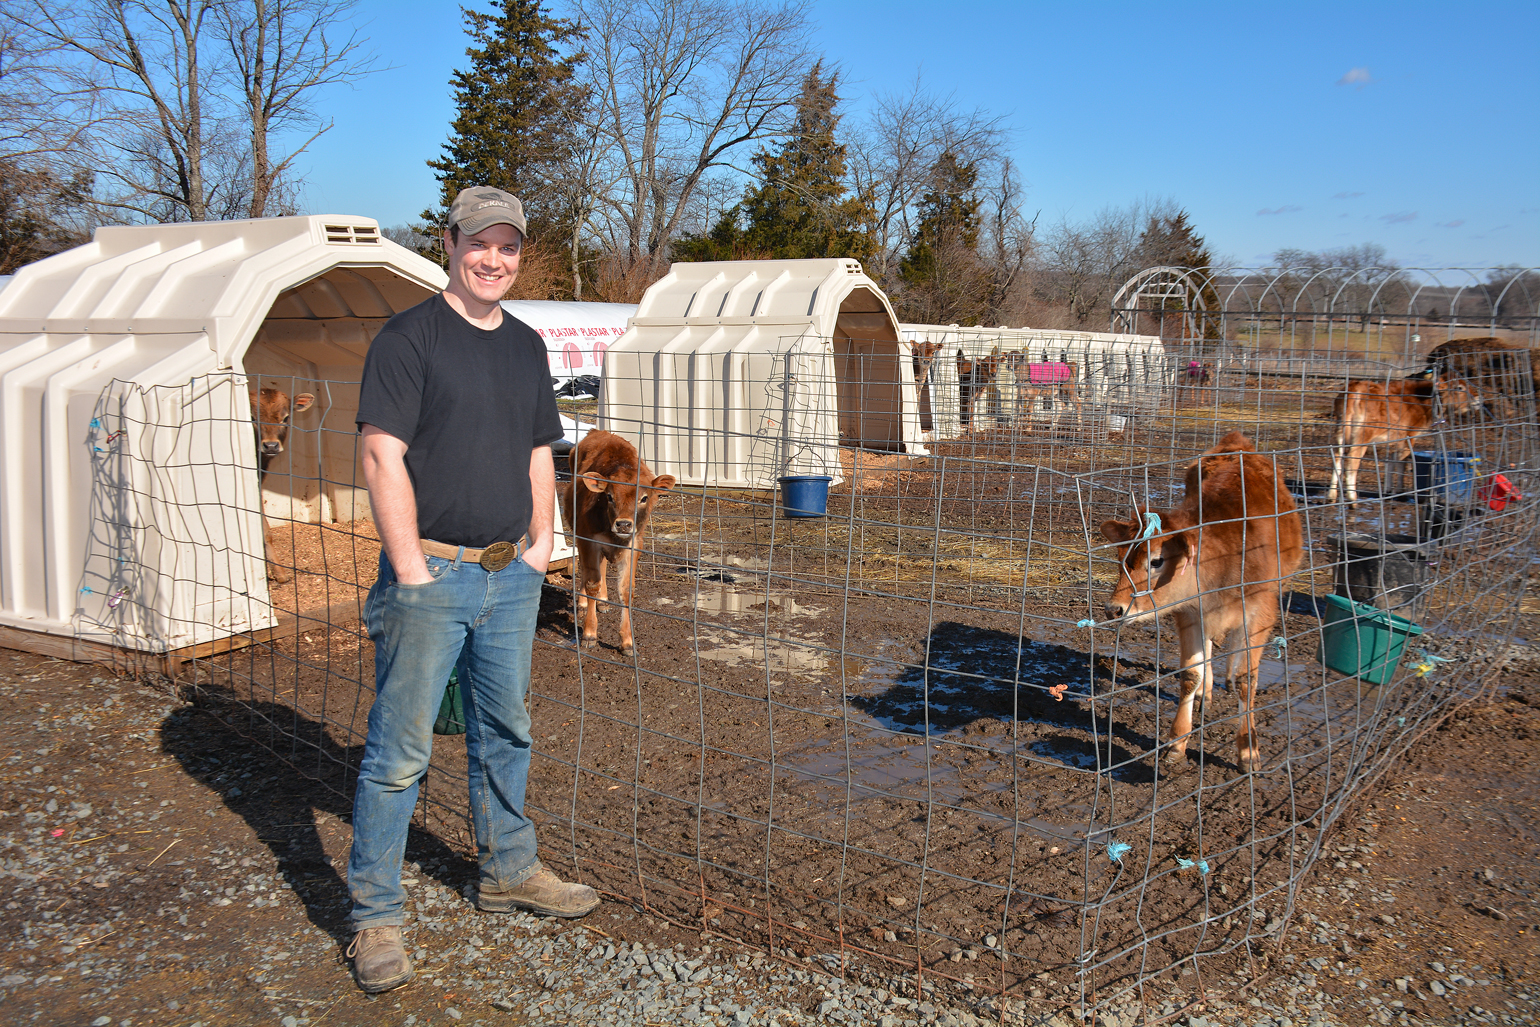 Dan Lyness stands with calves outside at Spring Run Dairy LLC